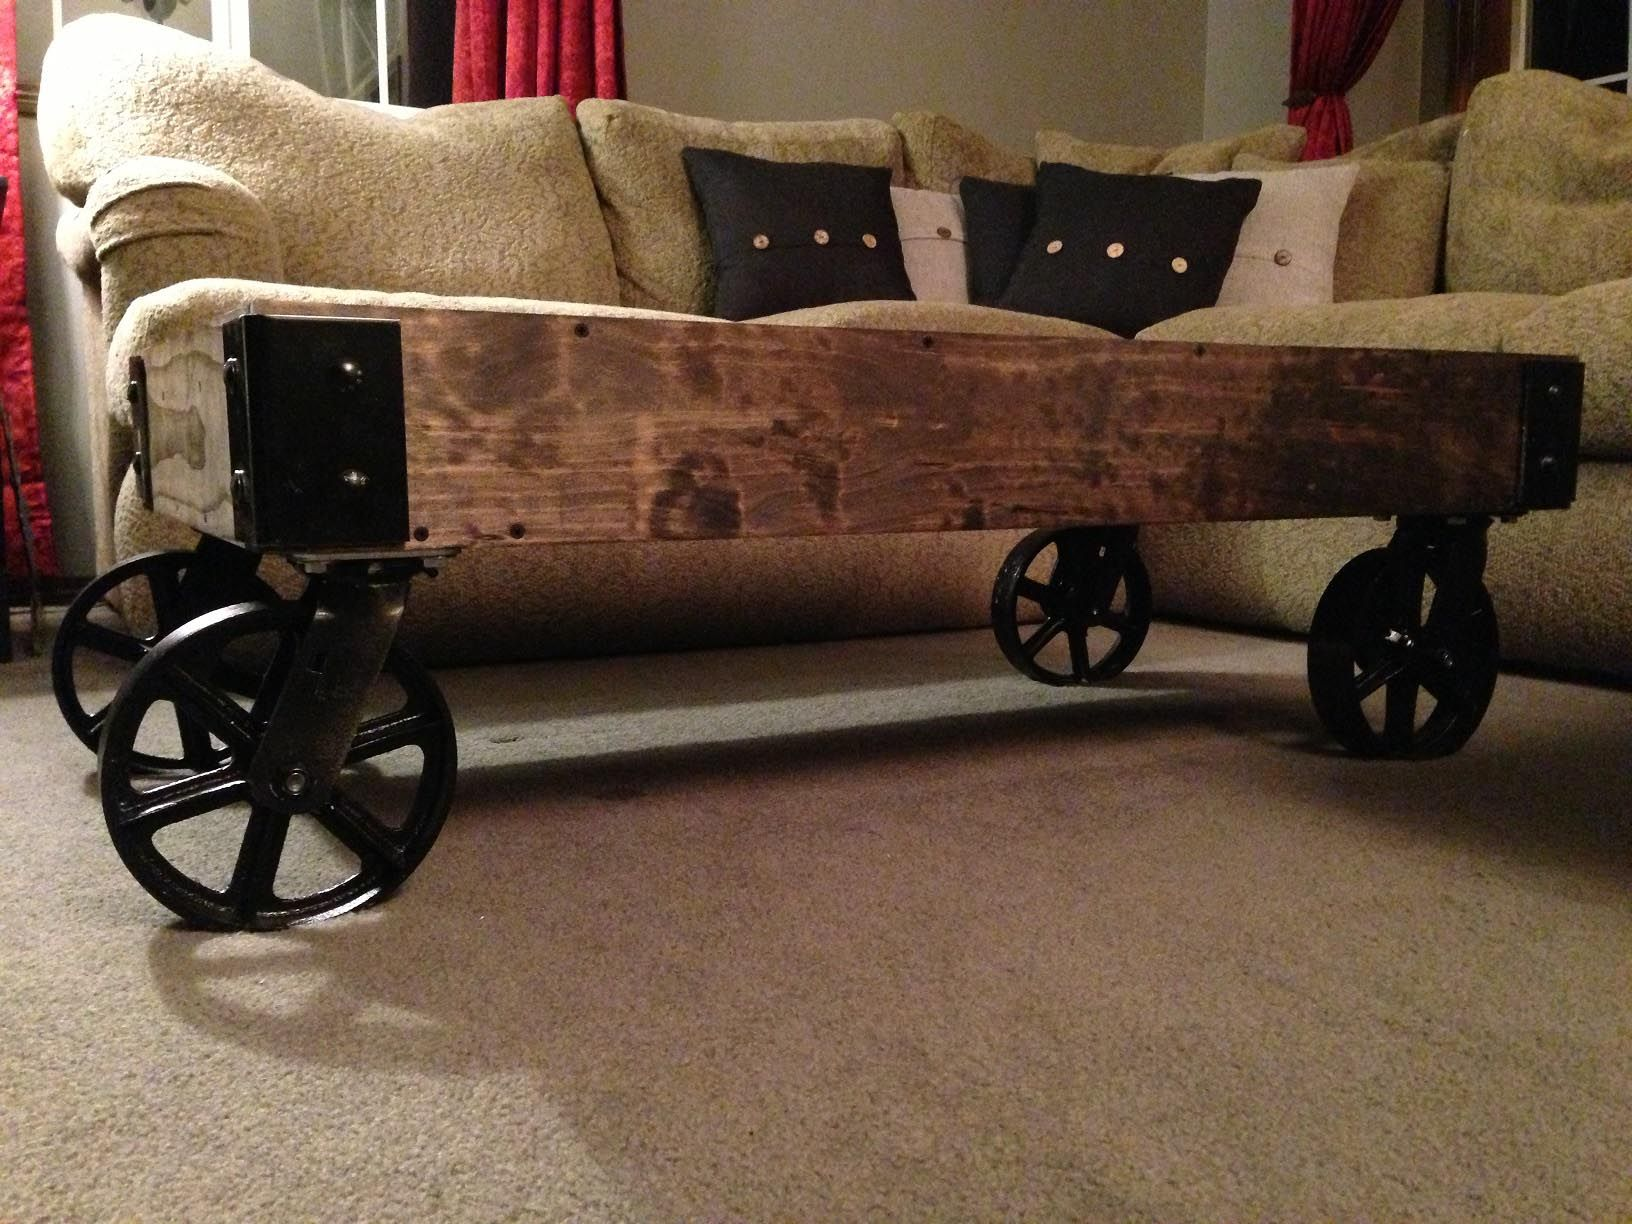 Metal Wheels For Coffee Table